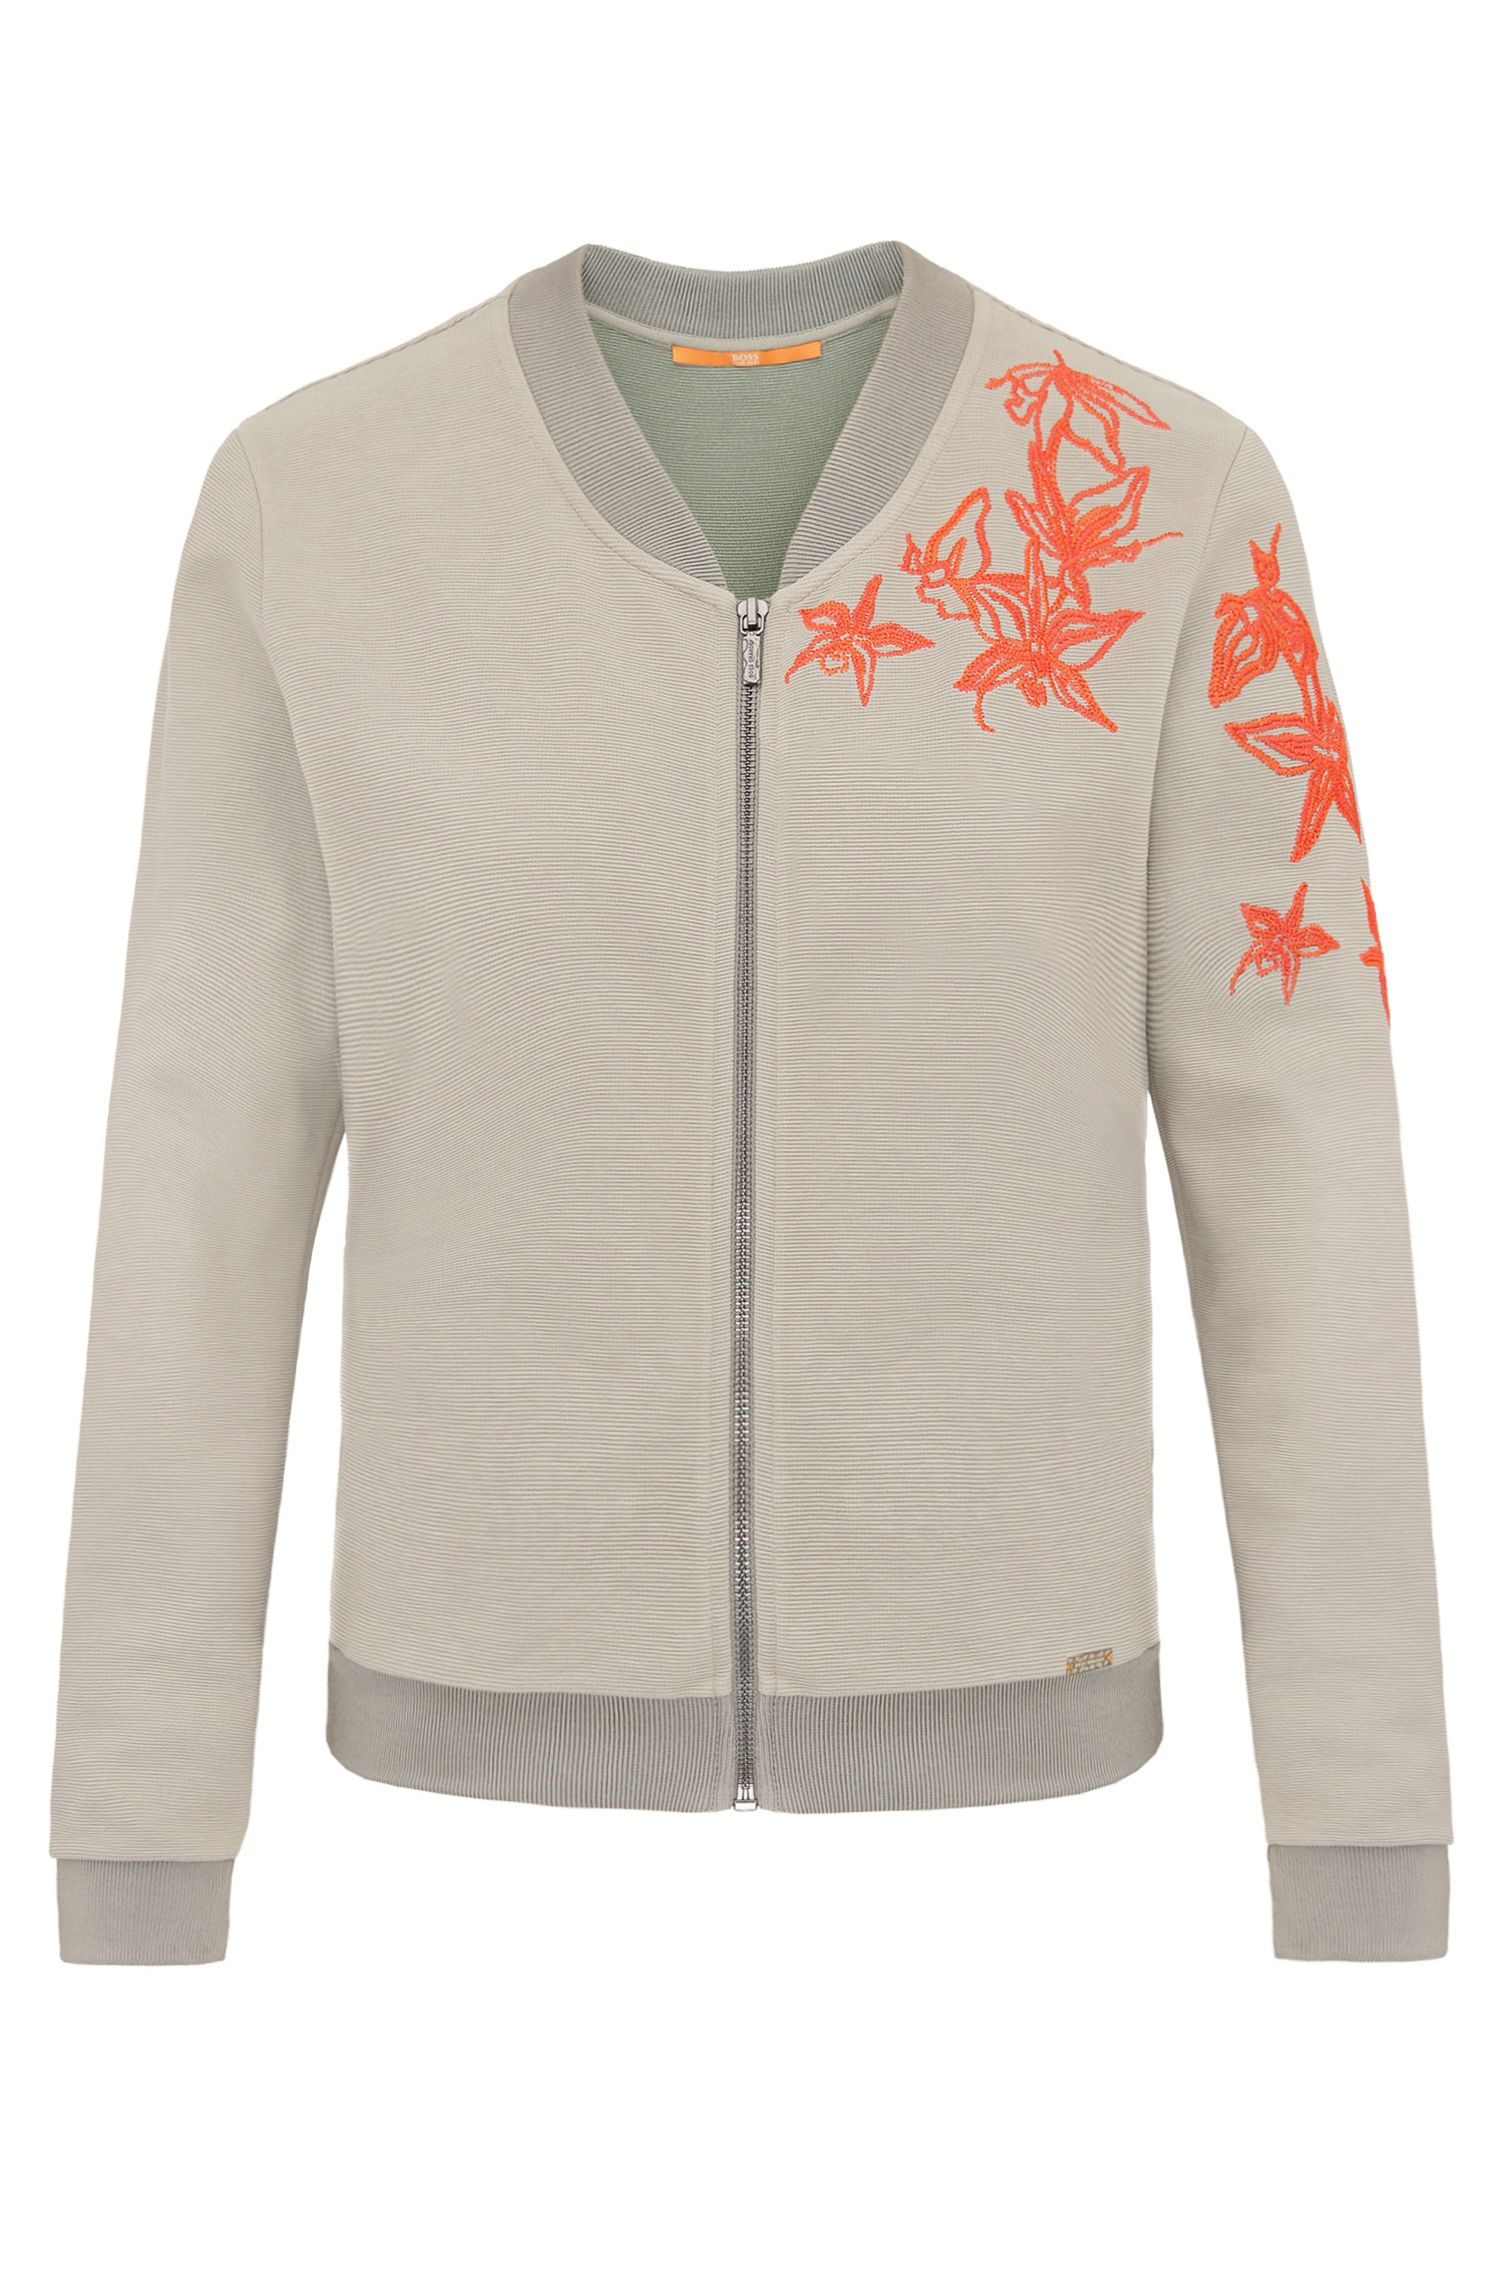 Blouson sweat Regular Fit brodé, en coton mélangé extensible : « Tablues »